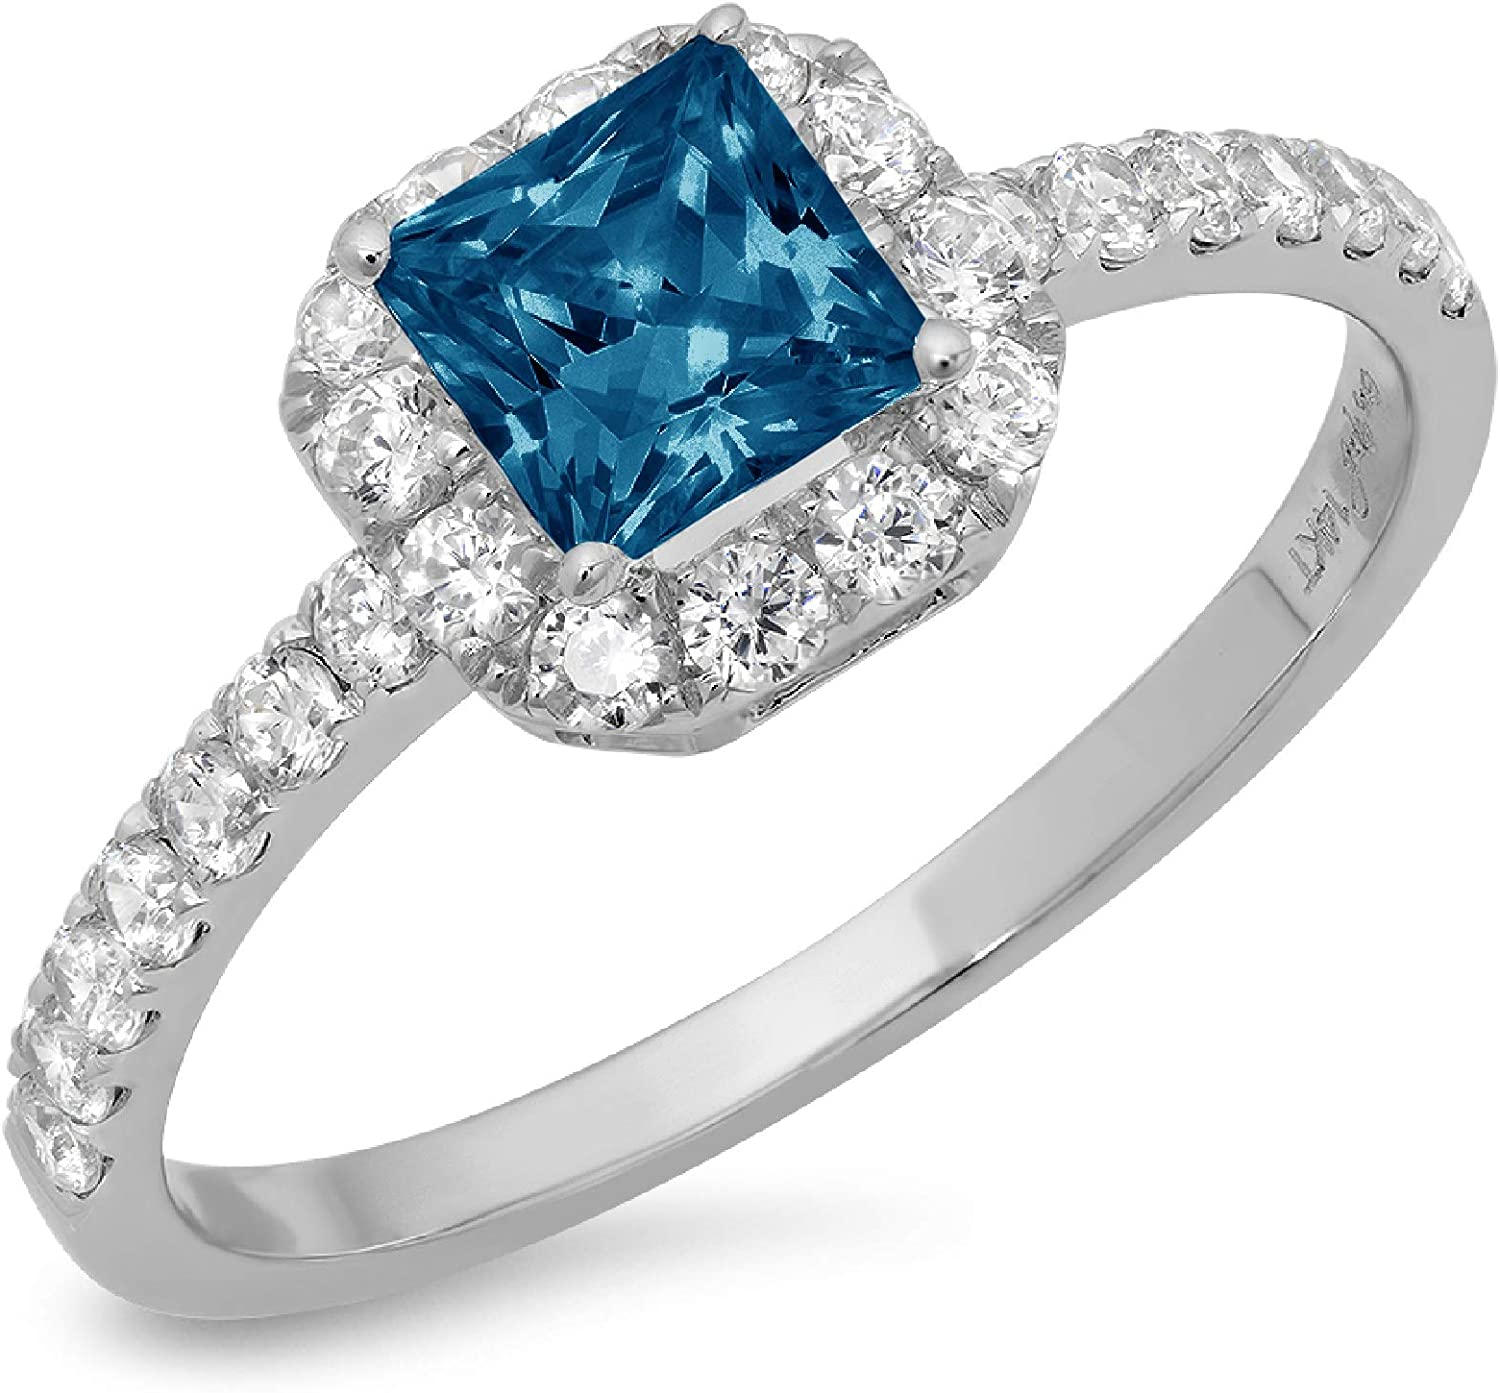 1.37ct Brilliant Princess Cut Solitaire with accent Natural London Blue Topaz Gem Stone VVS1 Designer Modern Statement Ring Real Solid 14k White Gold Clara Pucci